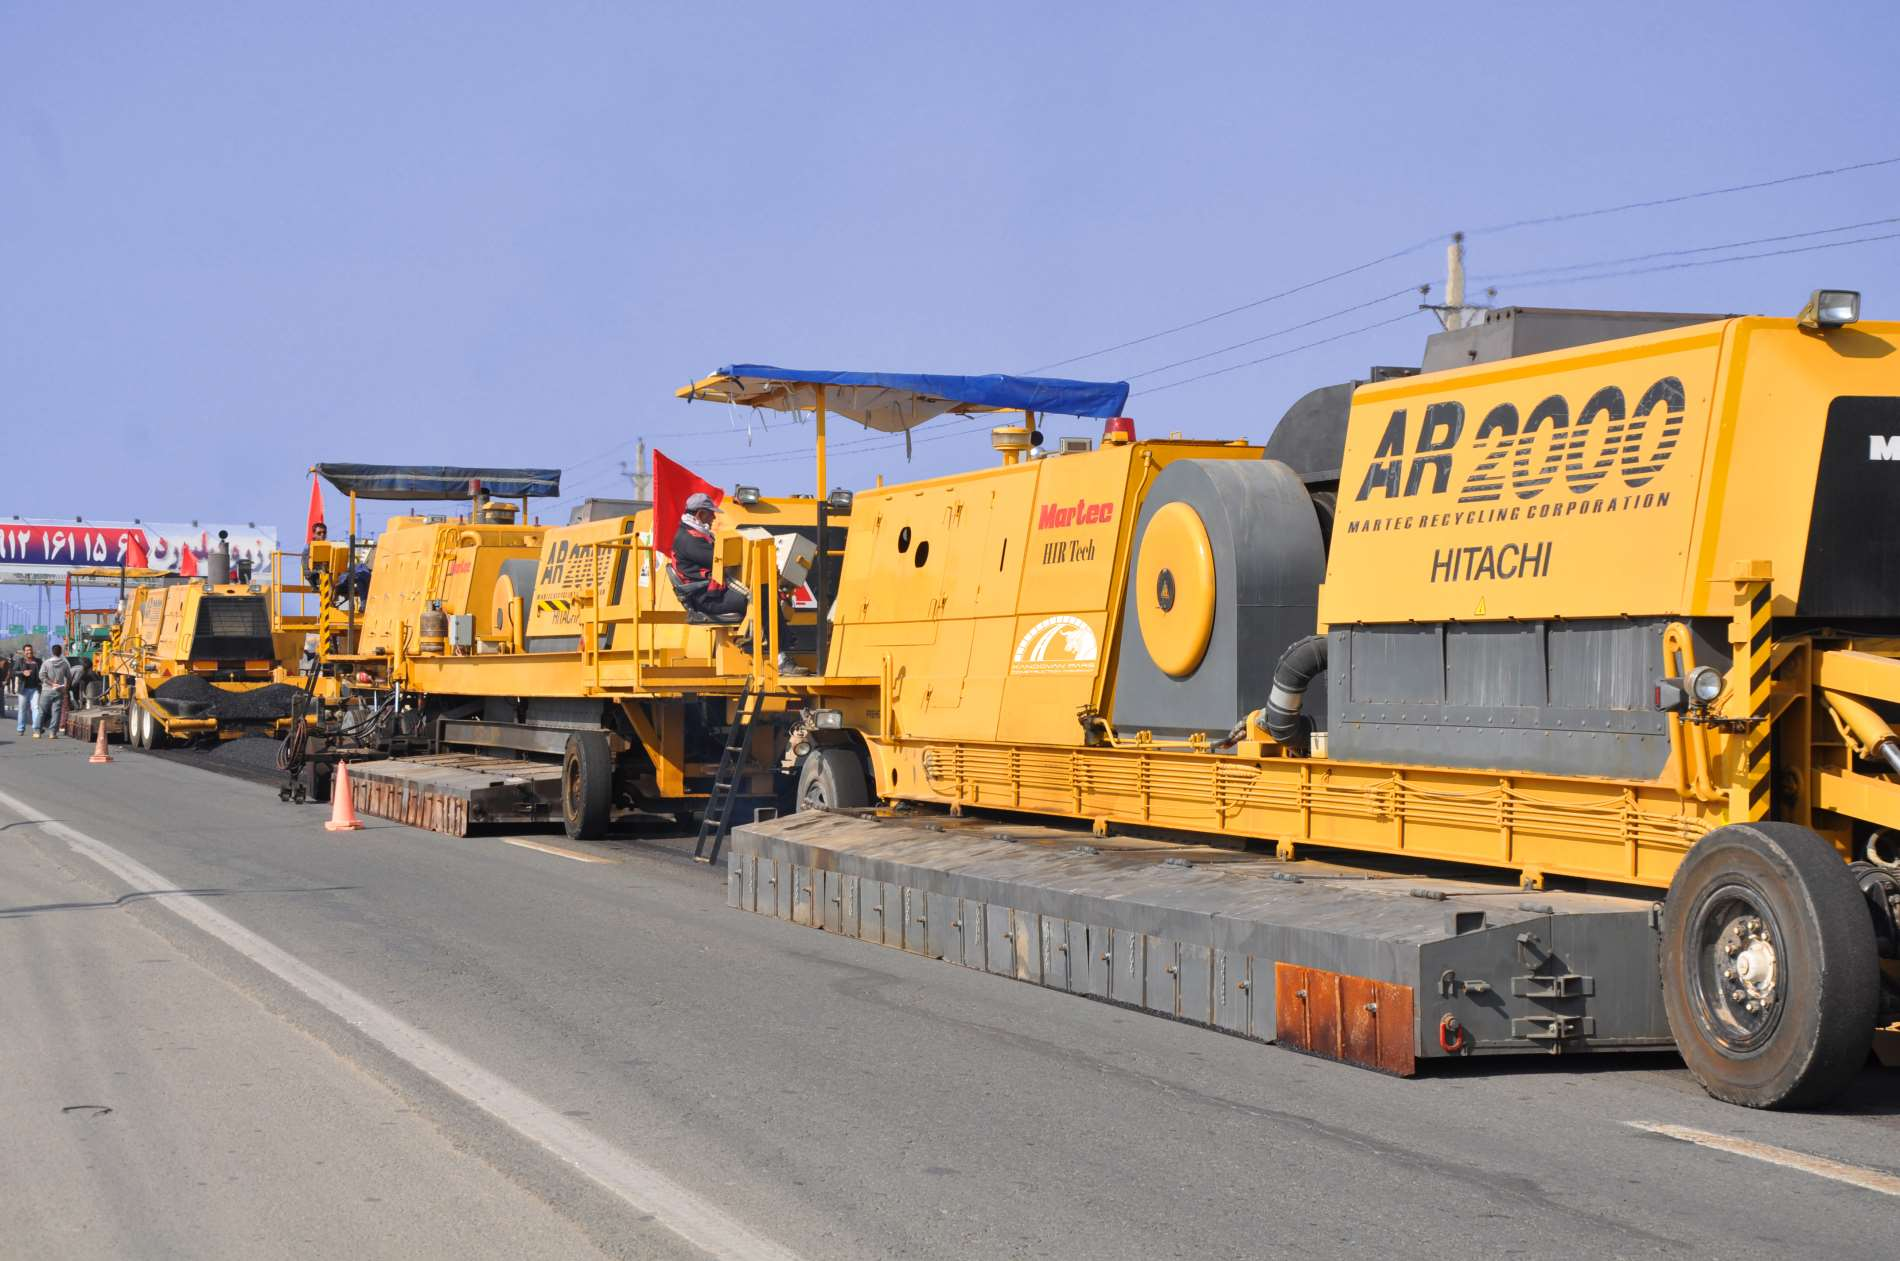 Polymer modified asphalt overlay and hot in-place recycling of Kamalshahr - Abyek road